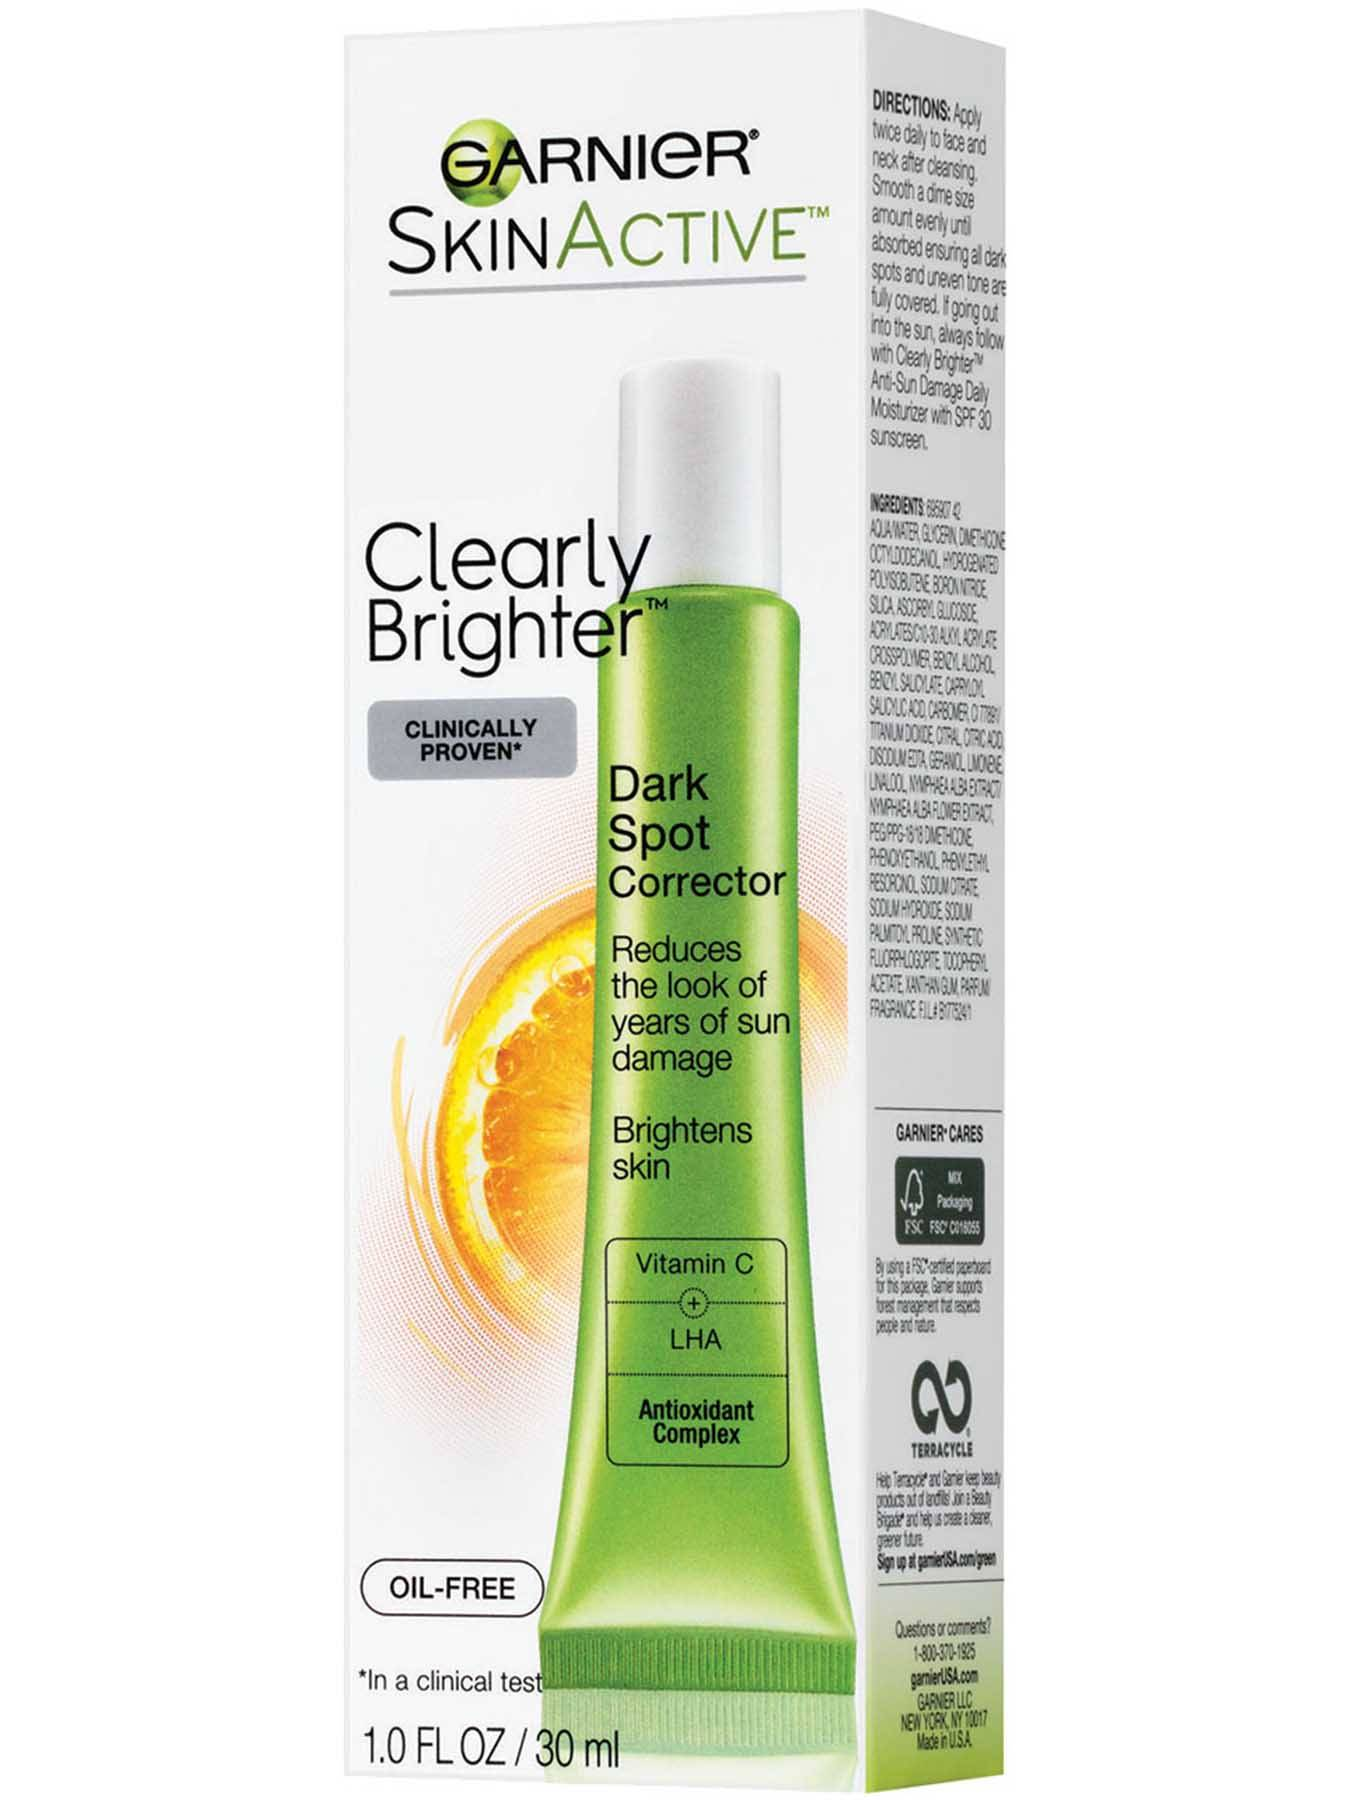 Garnier SkinActive Clearly Brighter Dark Spot Corrector Box Front Of Bottle